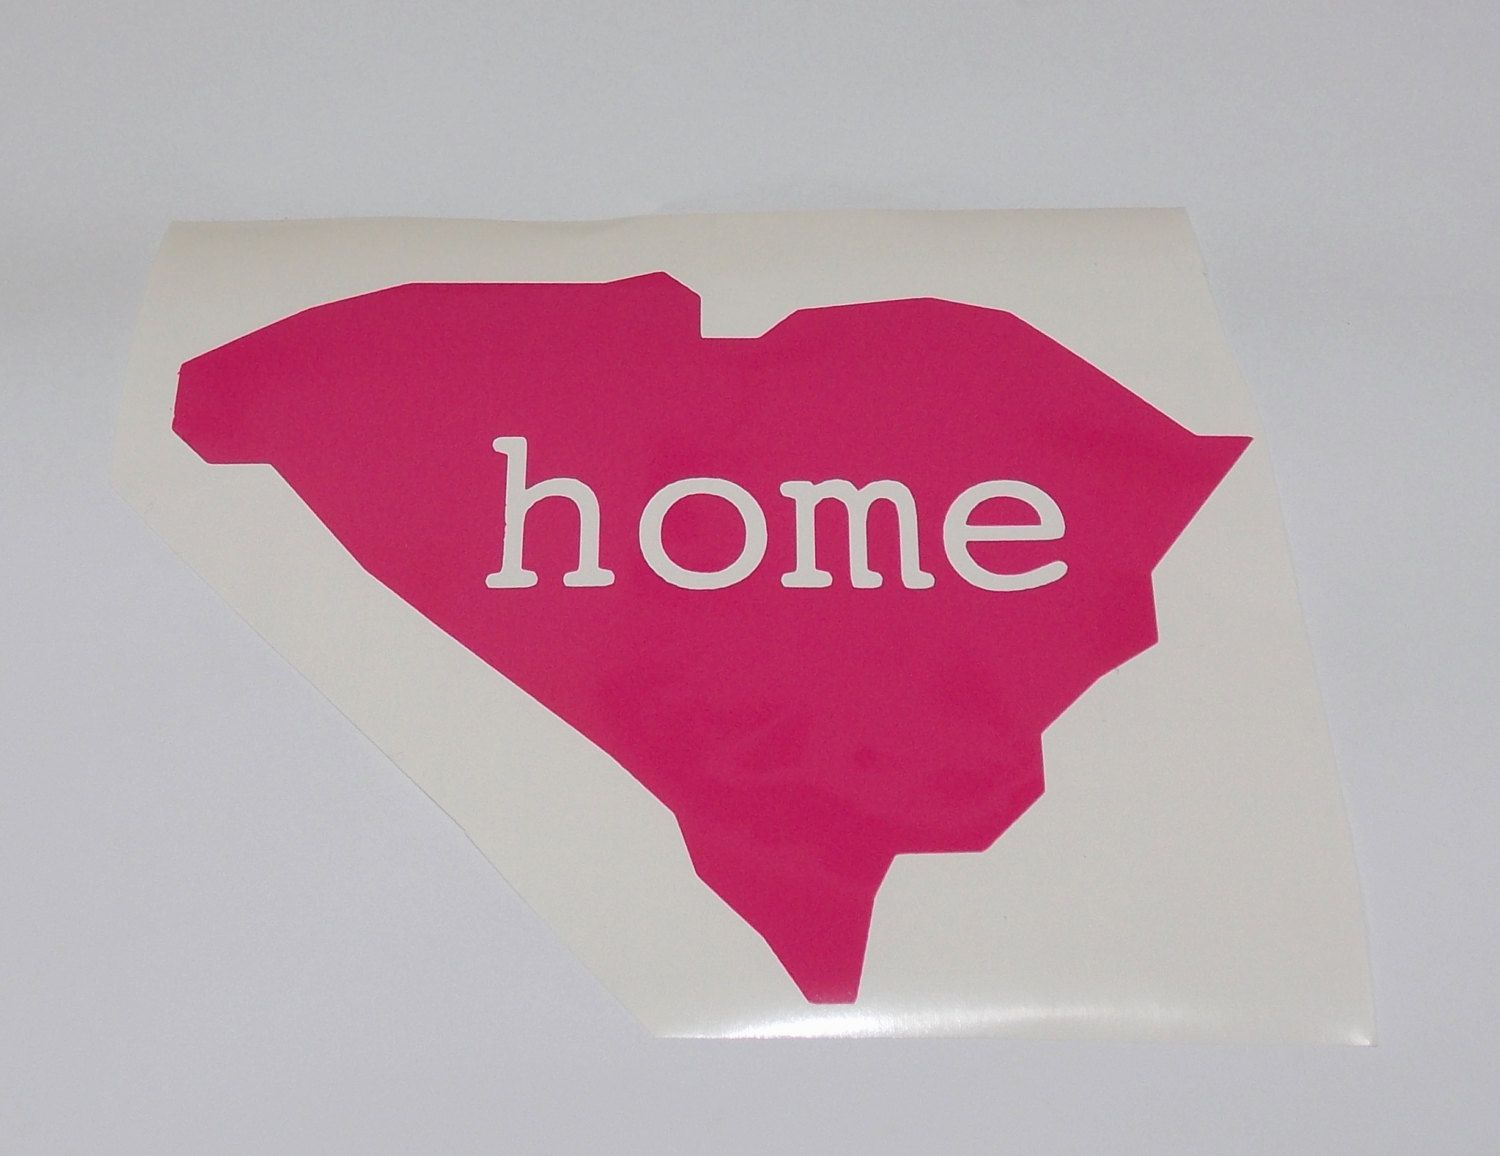 Home State Car Decal Vinyl DIY United States Via Etsy - How to make vinyl car decals at home